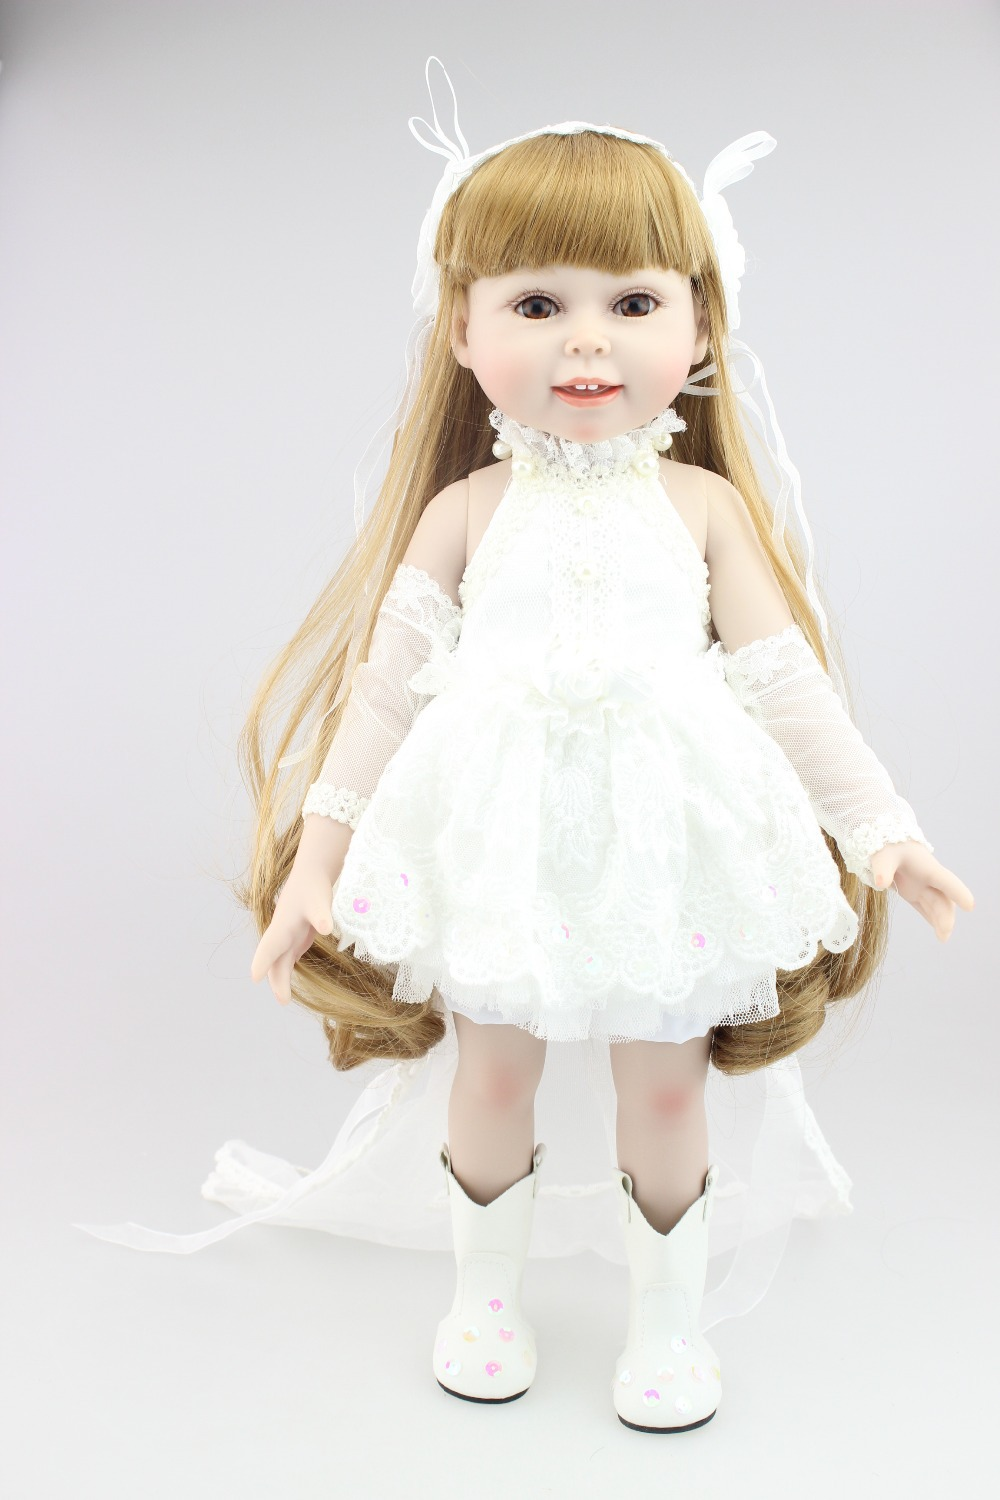 New design most popular 18inches fashion angel play doll education toy for girls birthday Gift industrial design education